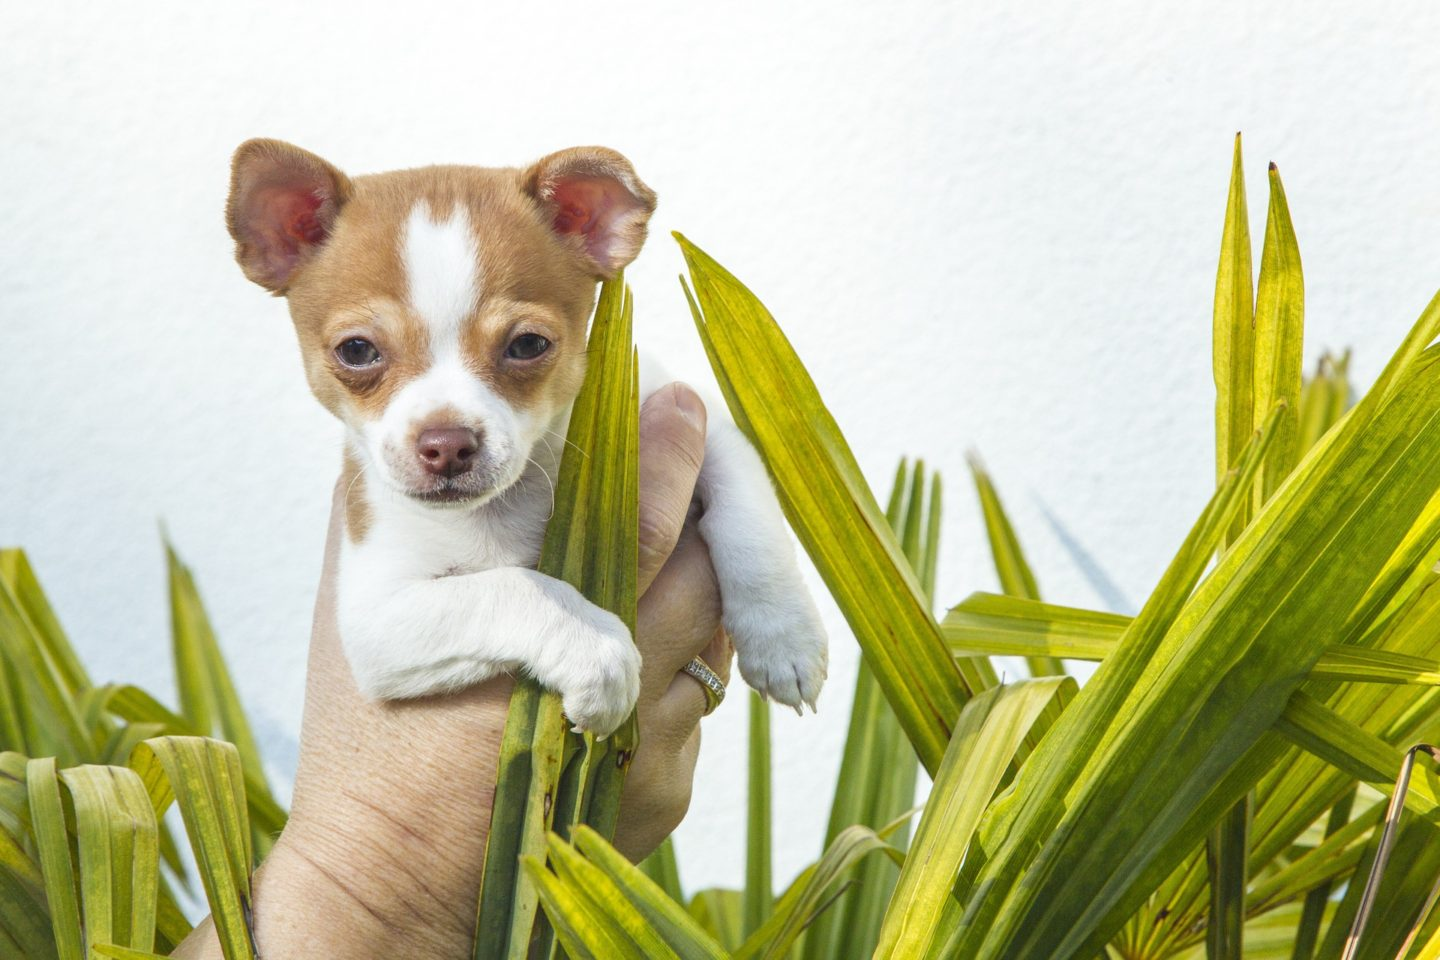 Can My Chihuahua get hayfever? Hayfever Symptoms in Dogs